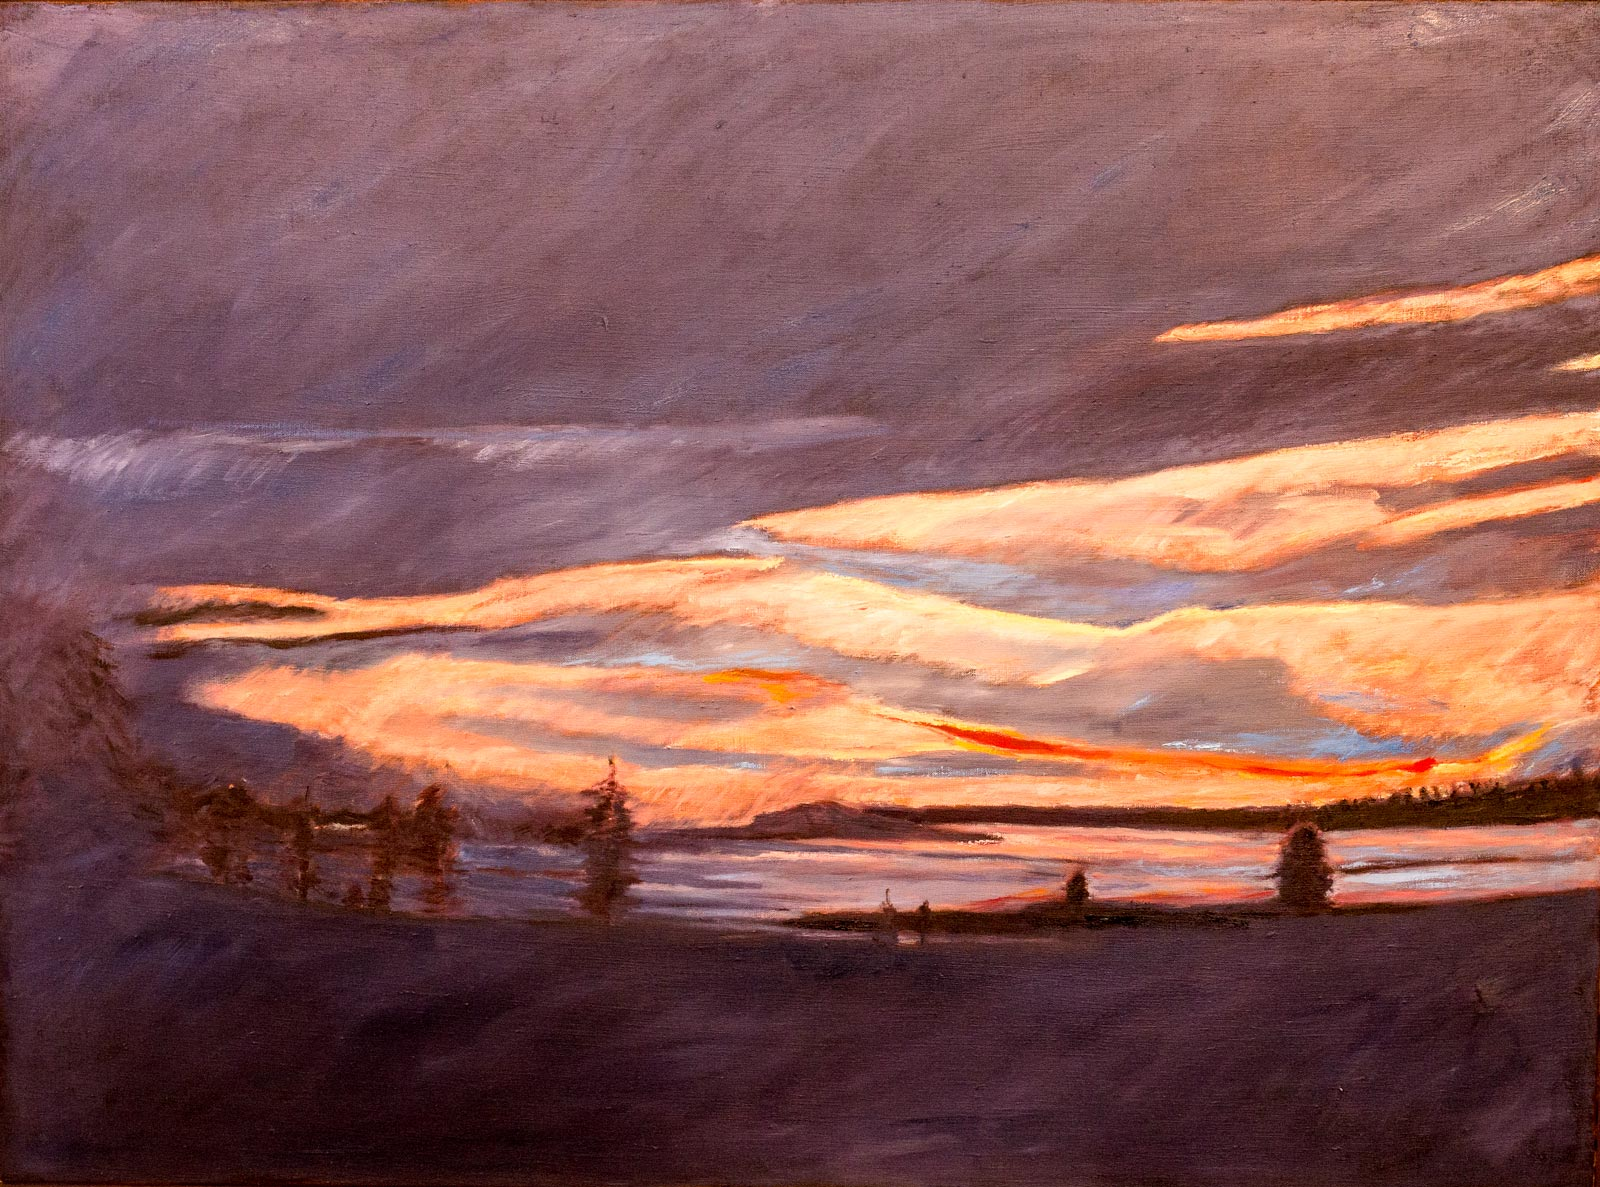 Cree Haven Sunset #2, 2011, 49x36